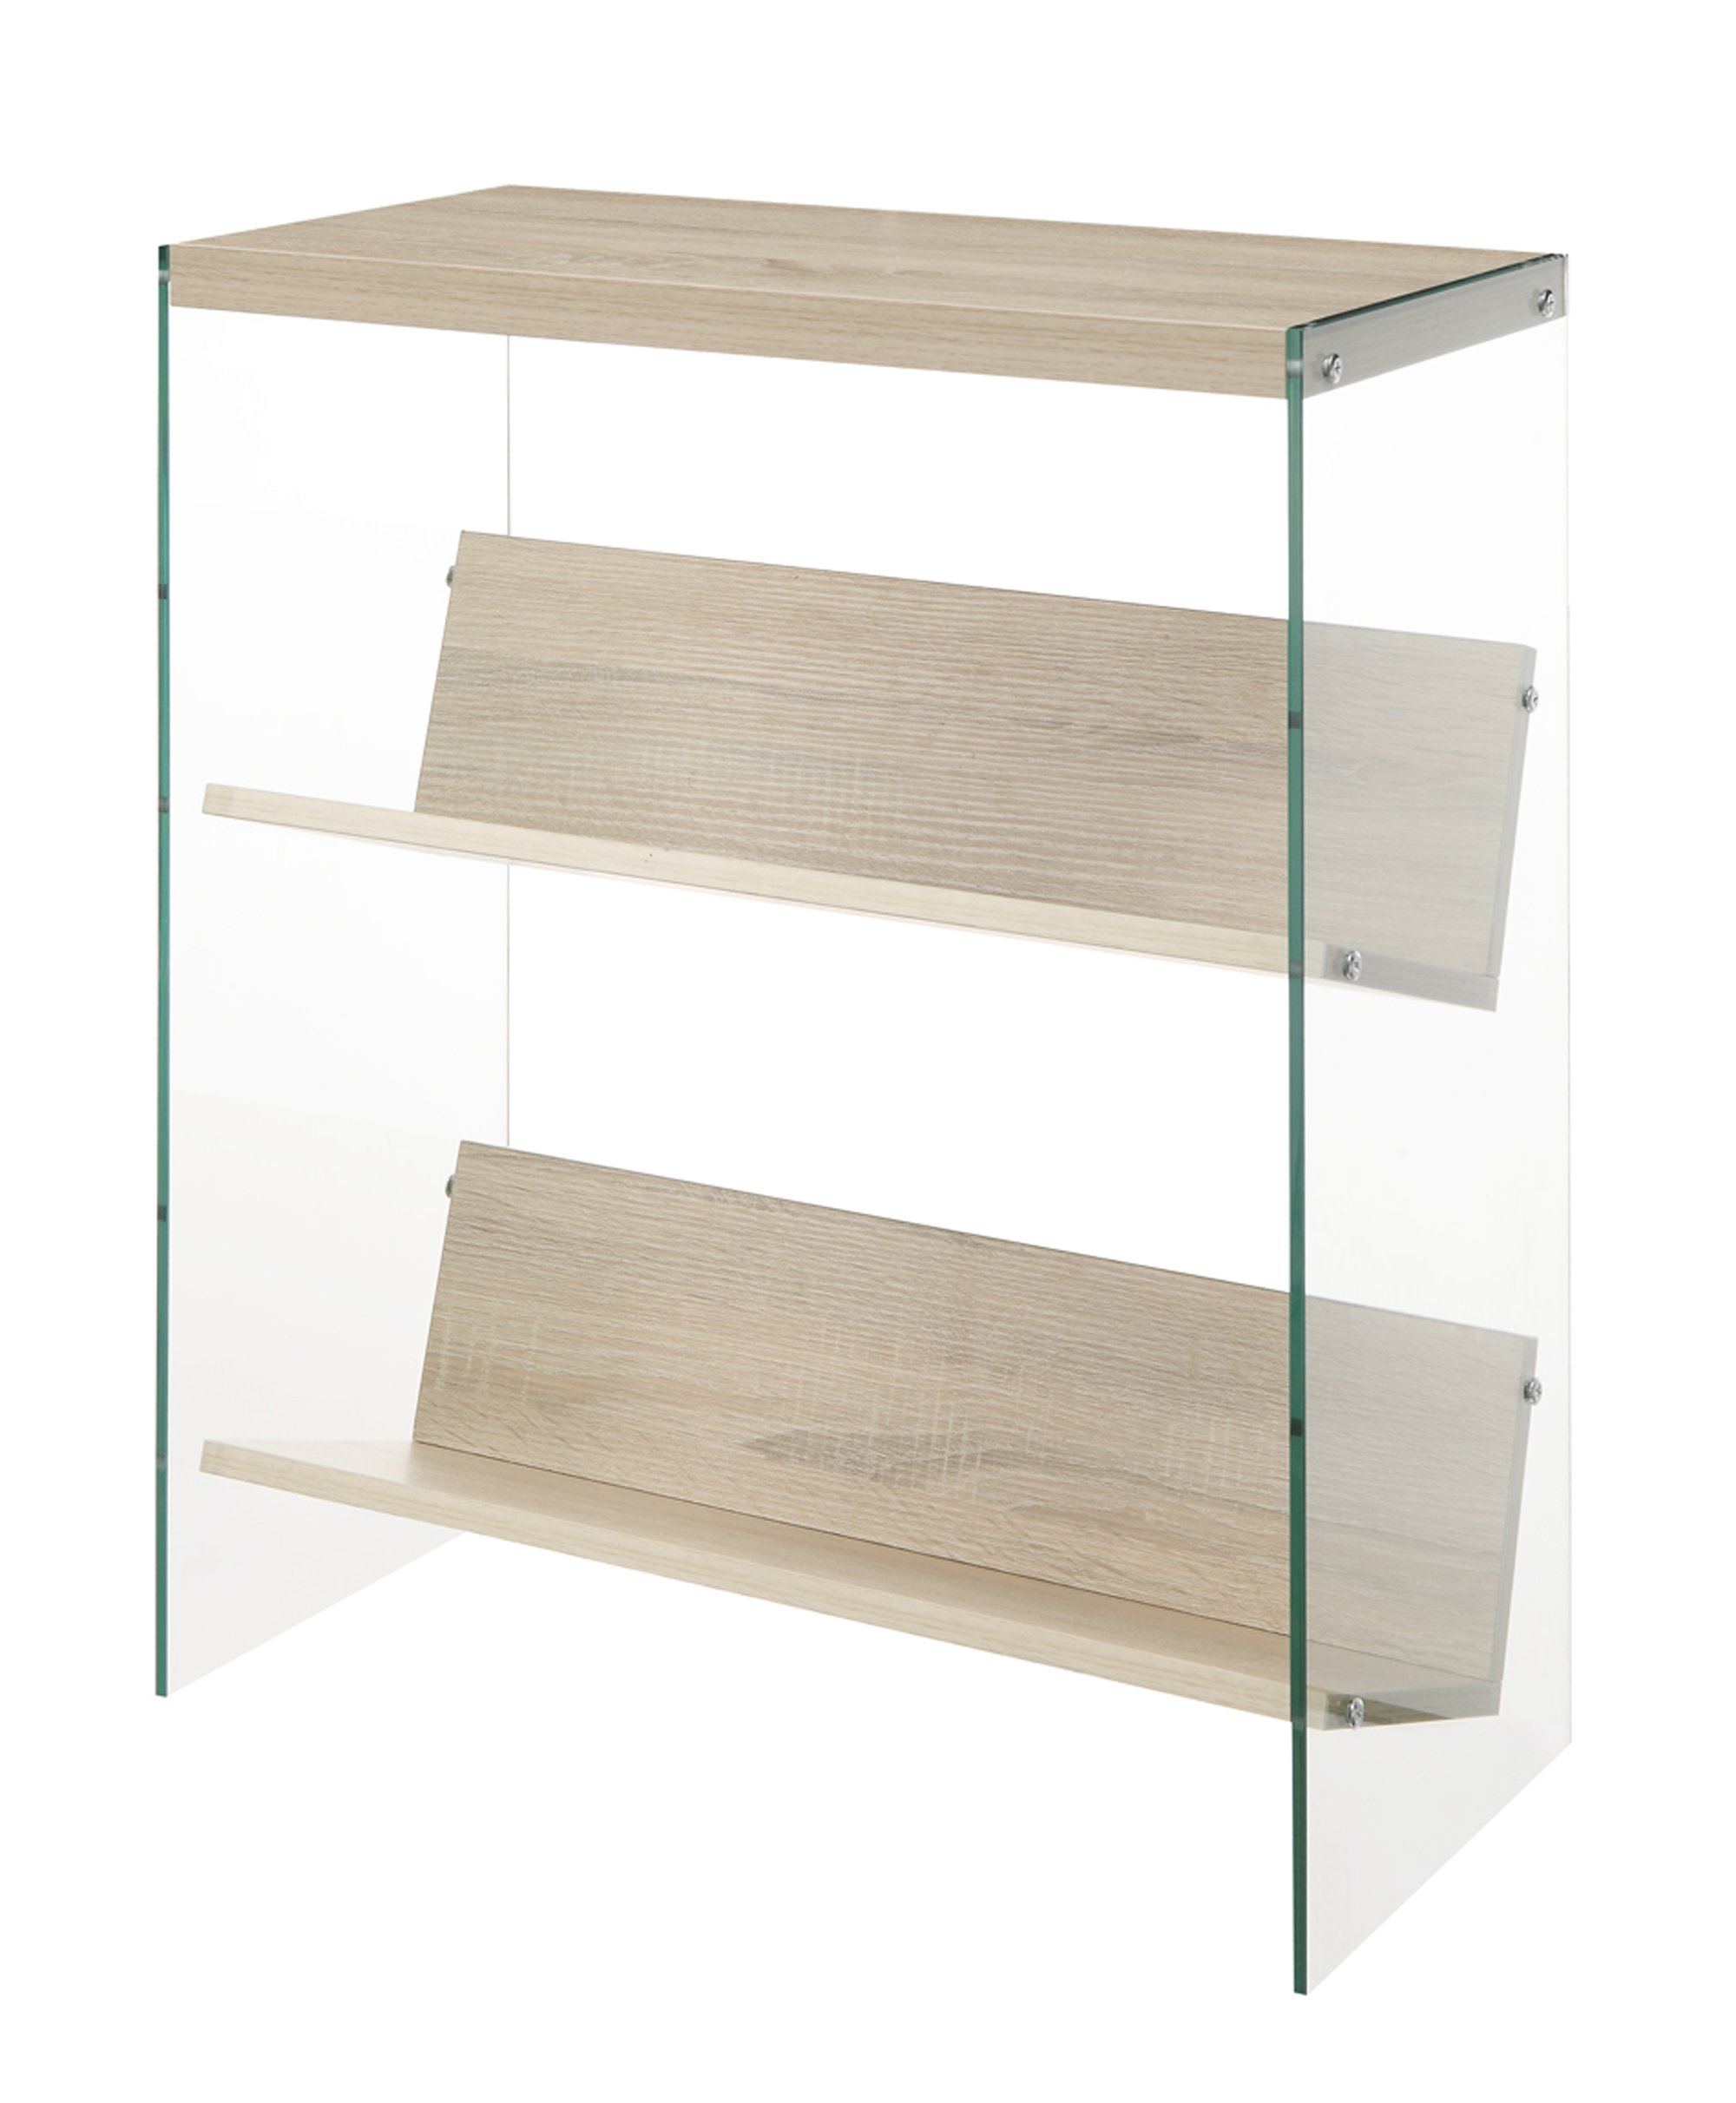 Convenience Concepts Soho Bookcase, Weathered White